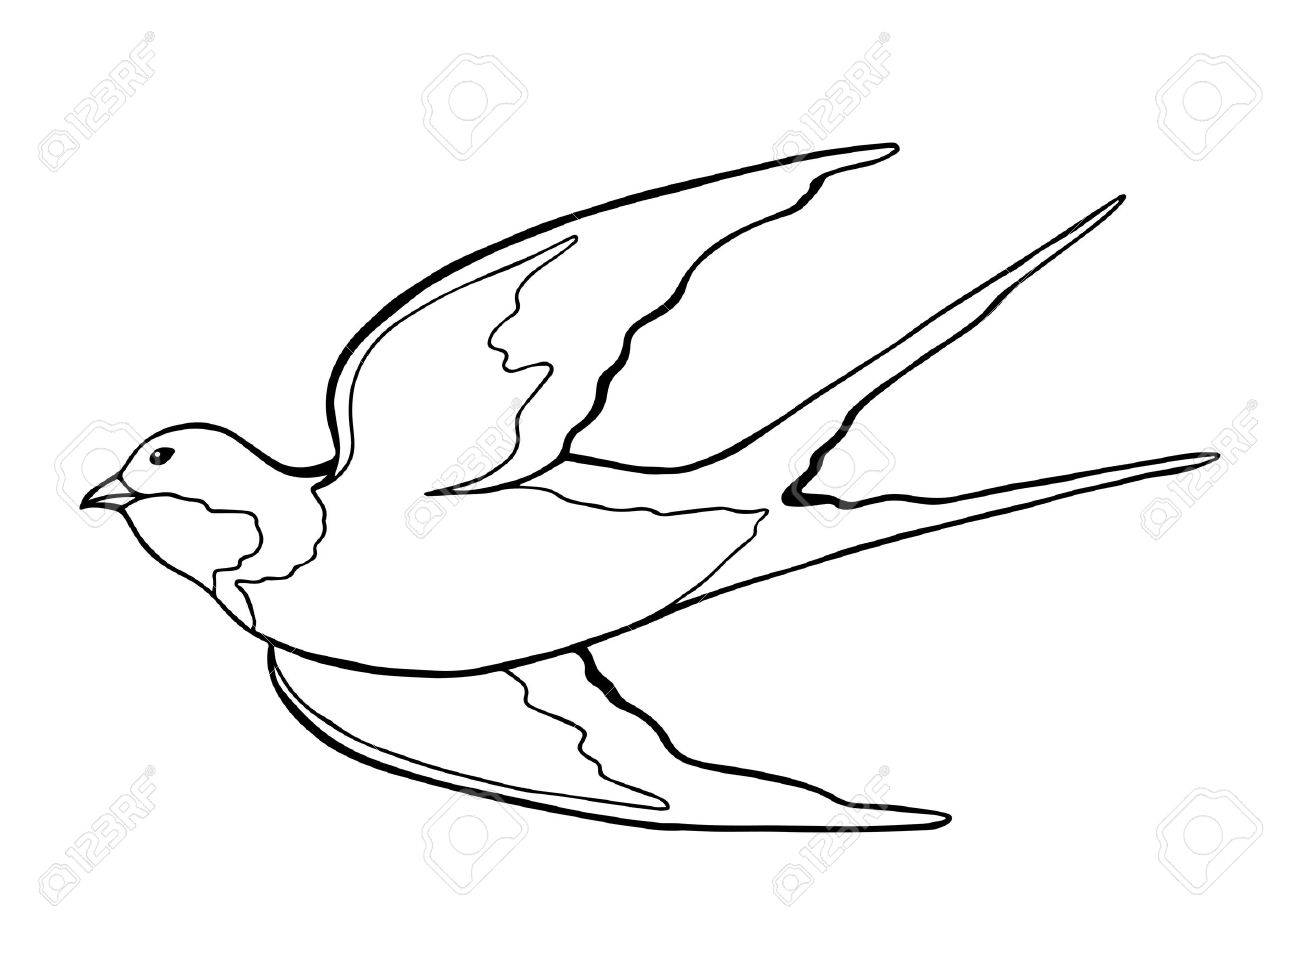 1300x975 Swallow Bird Black White Isolated Sketch Illustration Vector